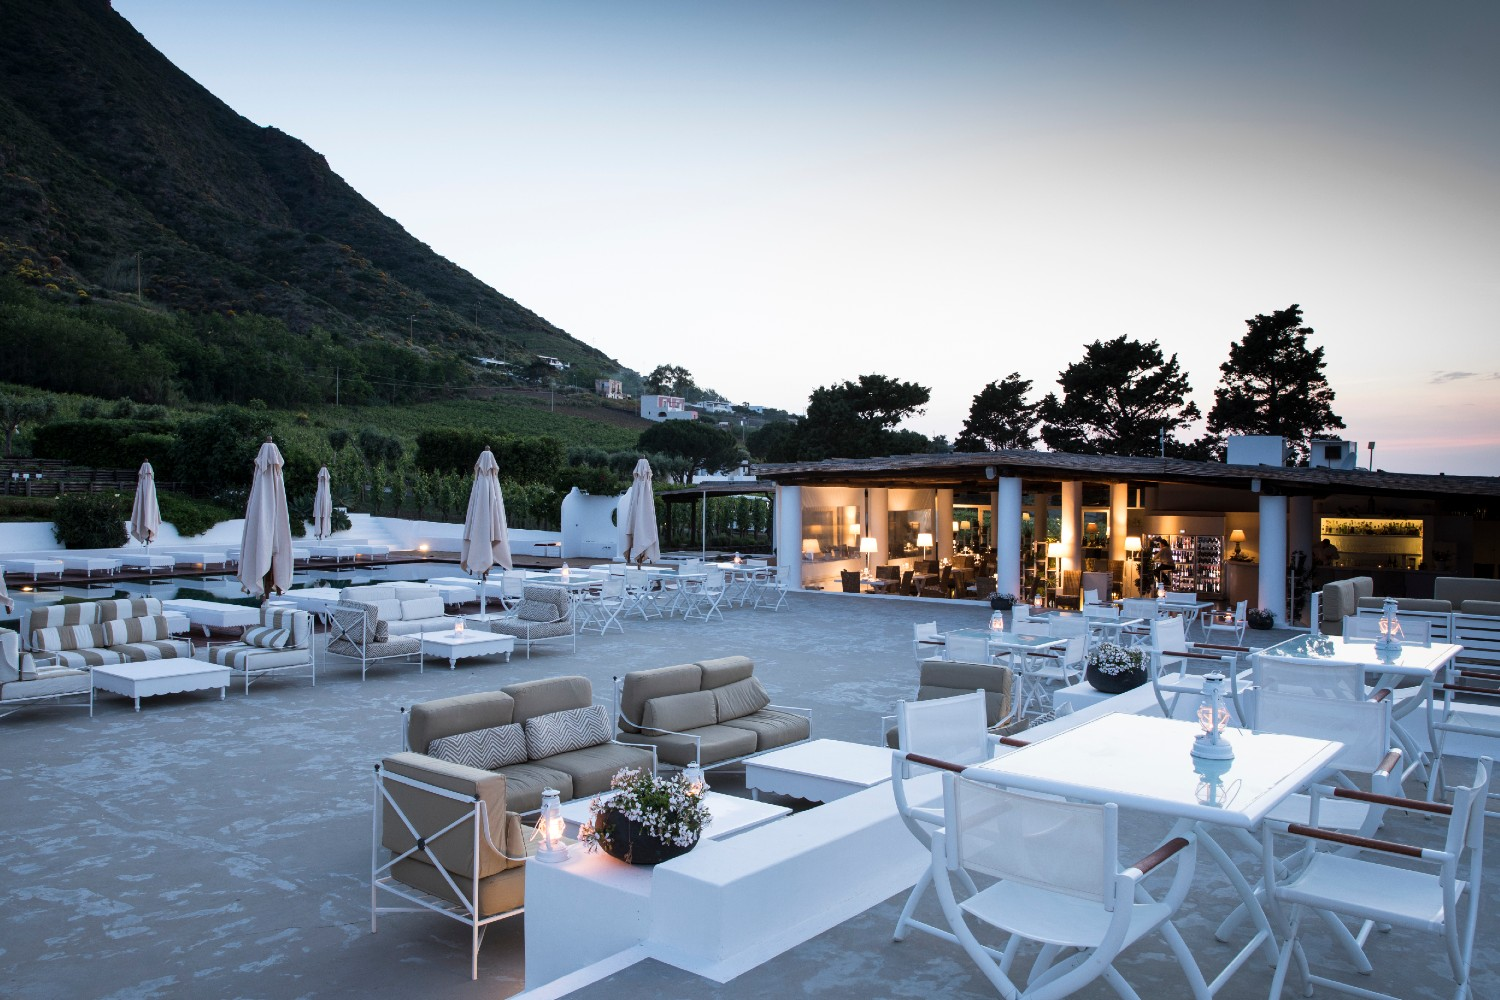 The terrace at Tenuta di Capofaro where guests of the Wine and Catamaran Tour of the Aeolian Islands will enjoy a coffee during their visit to the vineyard